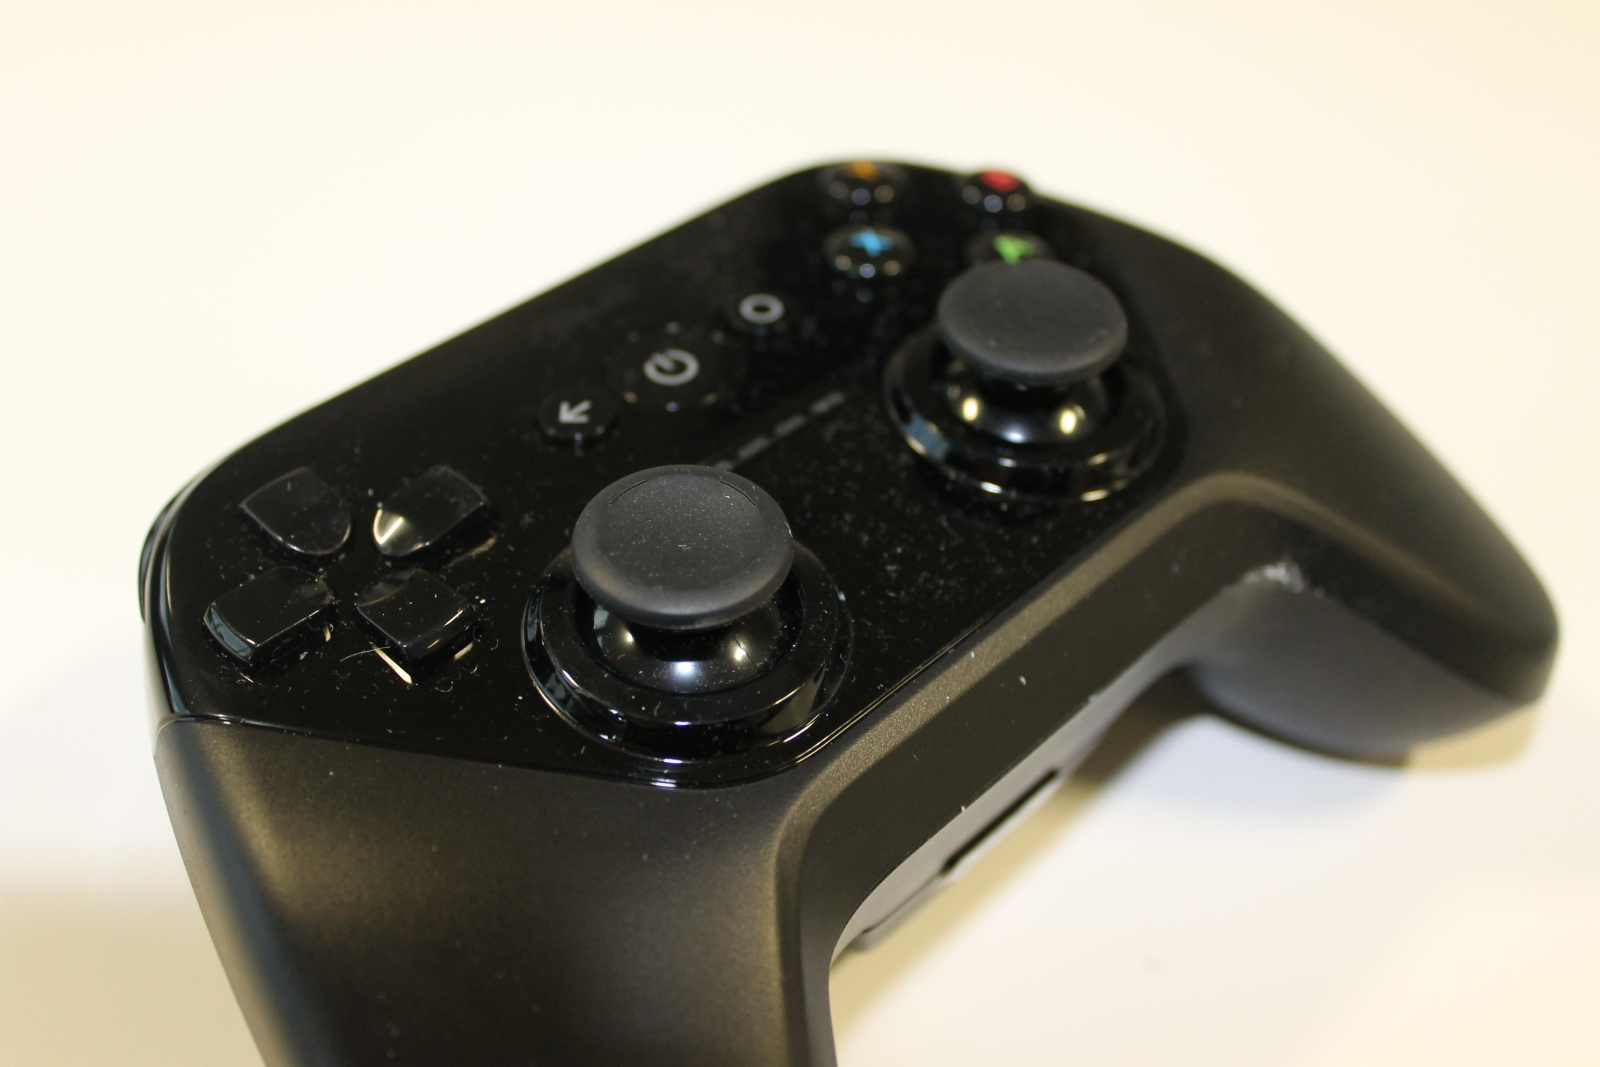 Nexus Player Bluetooth Controller Review